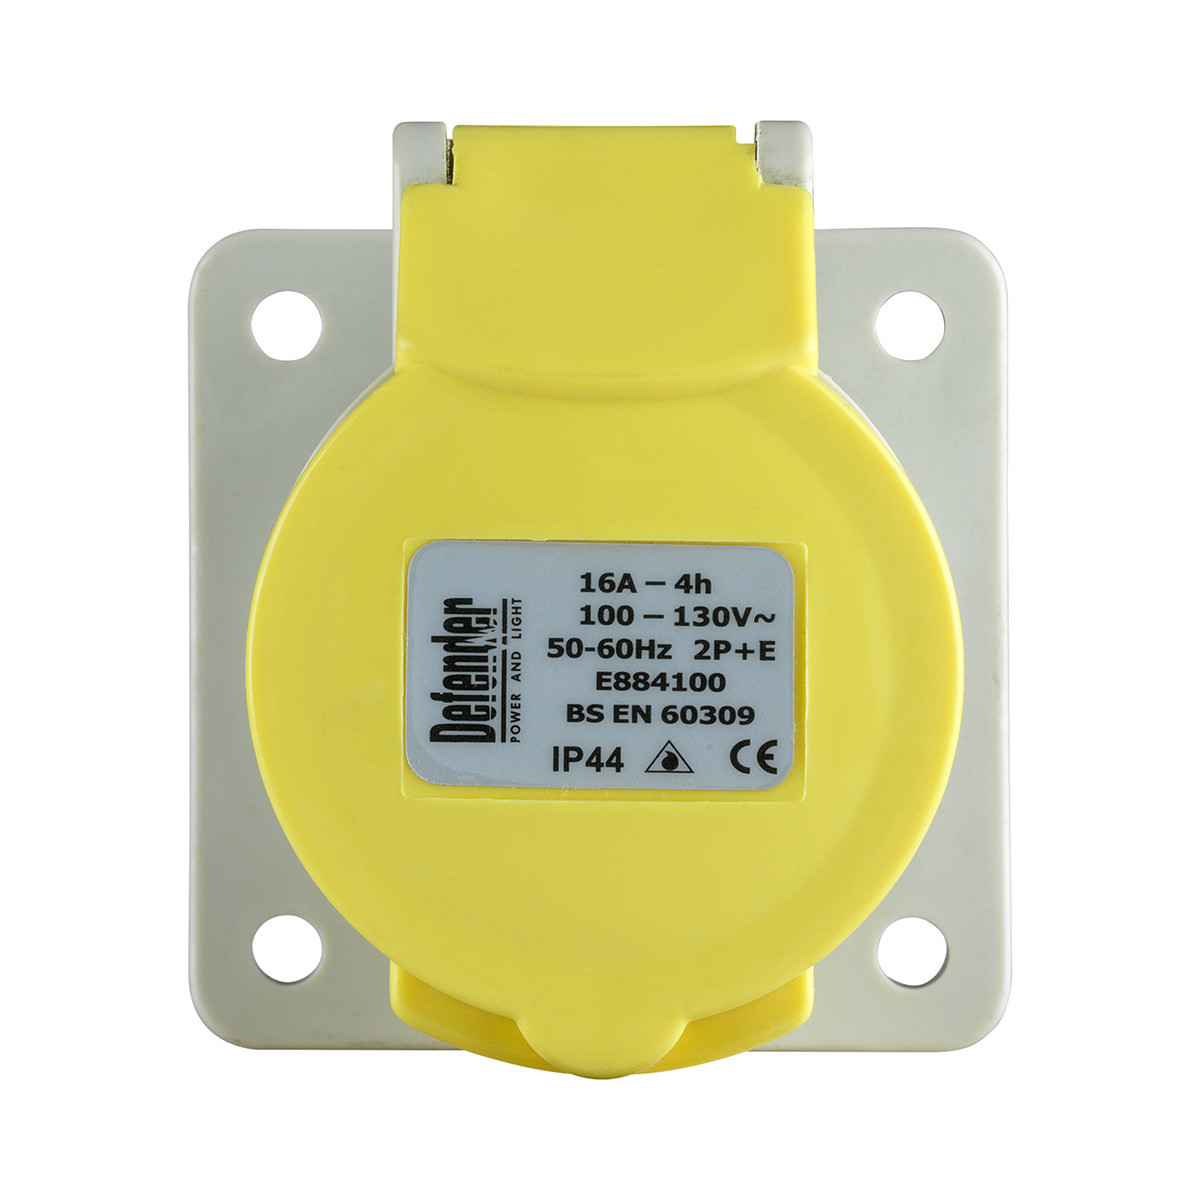 Defender 16A Panel Socket - Yellow - Display Packed 110V